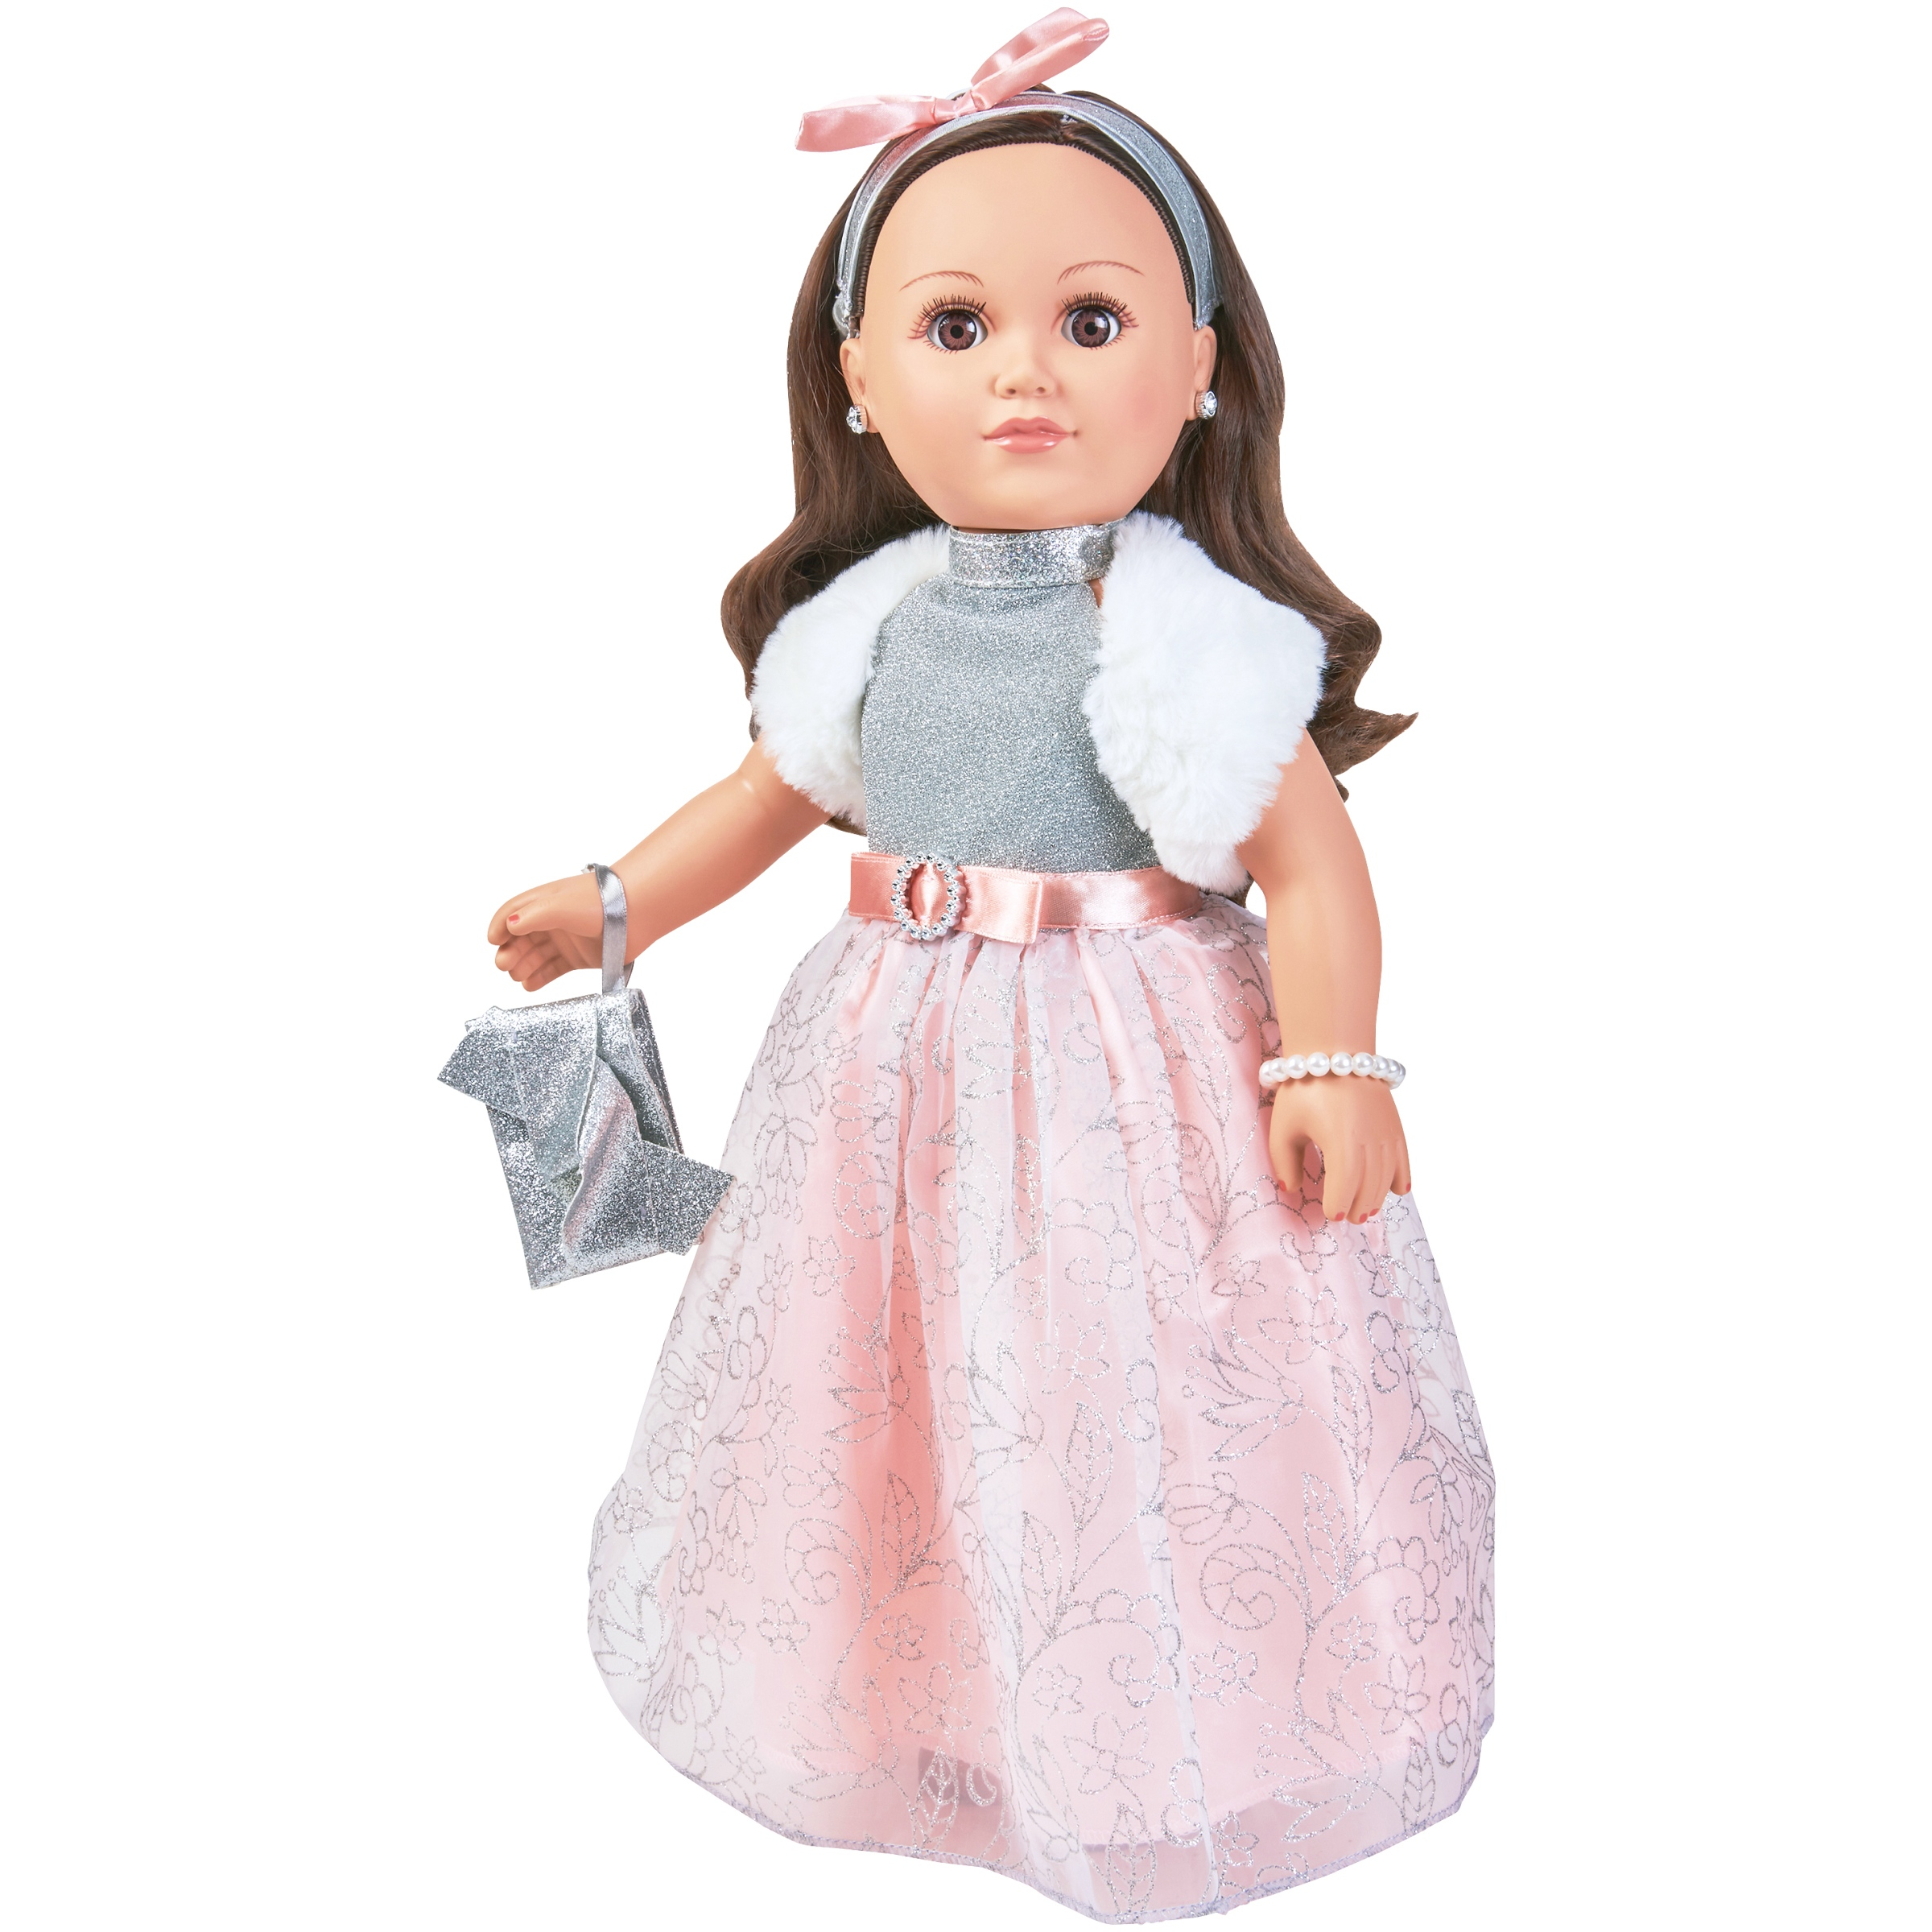 "My Life As 18"" Poseable Winter Princess Doll, Brunette with a Soft Torso"